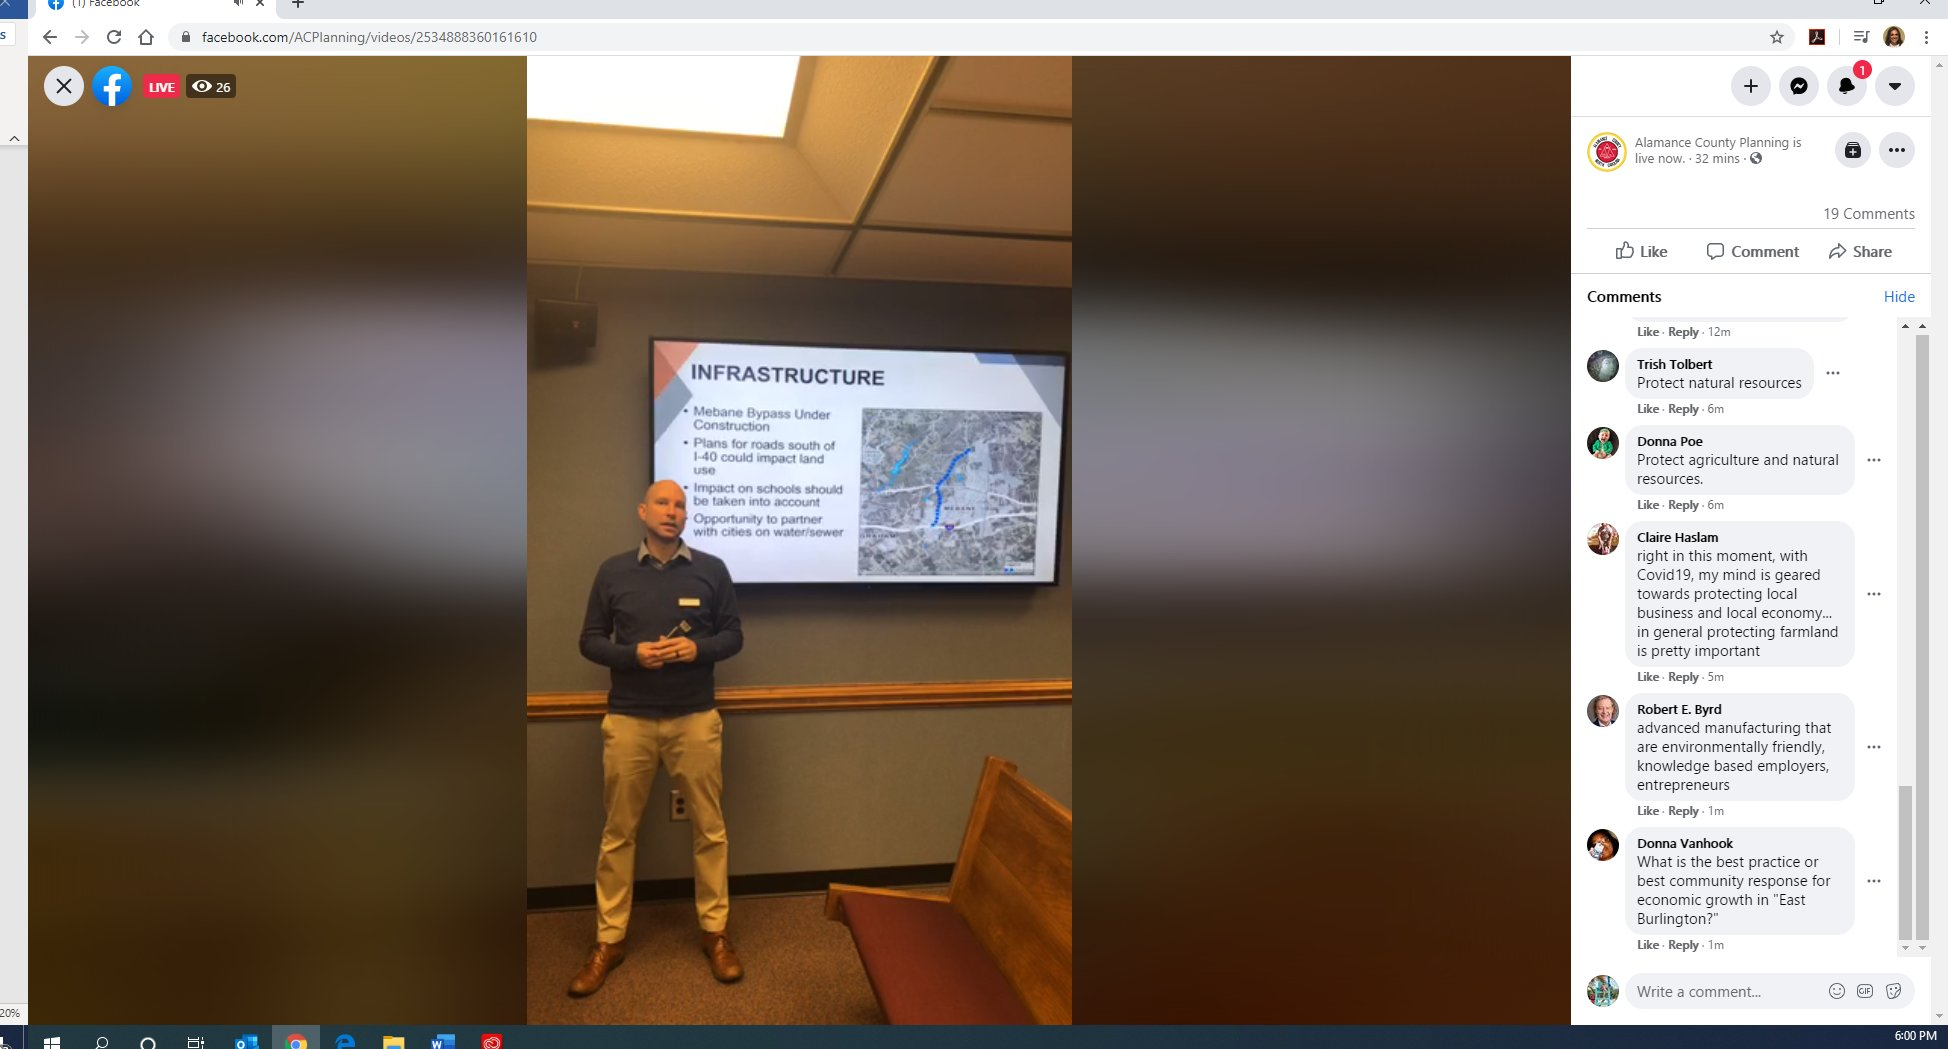 Jake holds public meeting via Facebook for Alamance during social distancing 032420